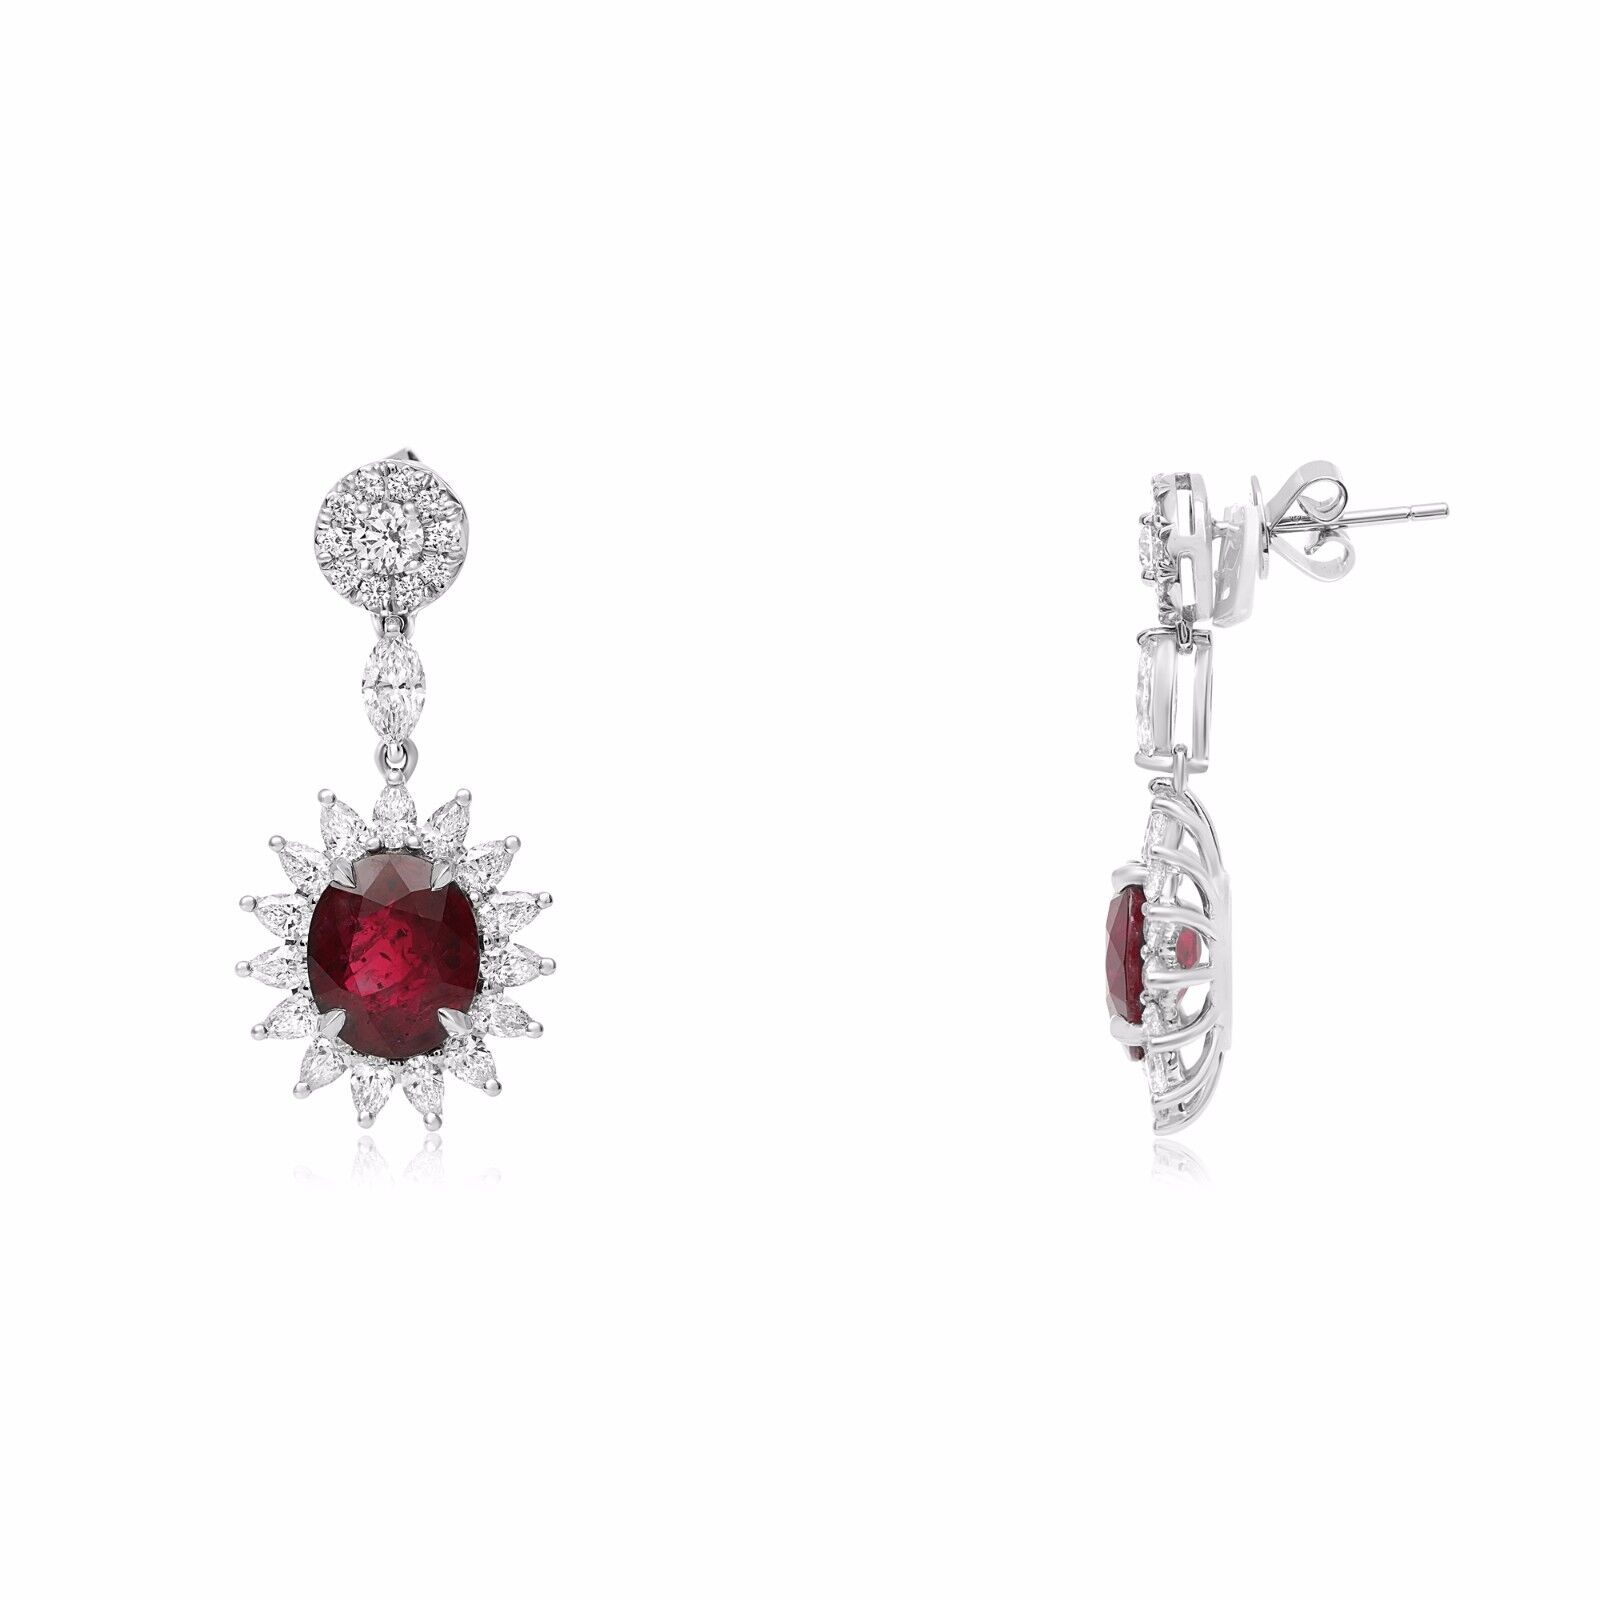 Natural GIA Certified 18K Gold Ruby Earrings with Diamonds 6.72 Carats Rubies